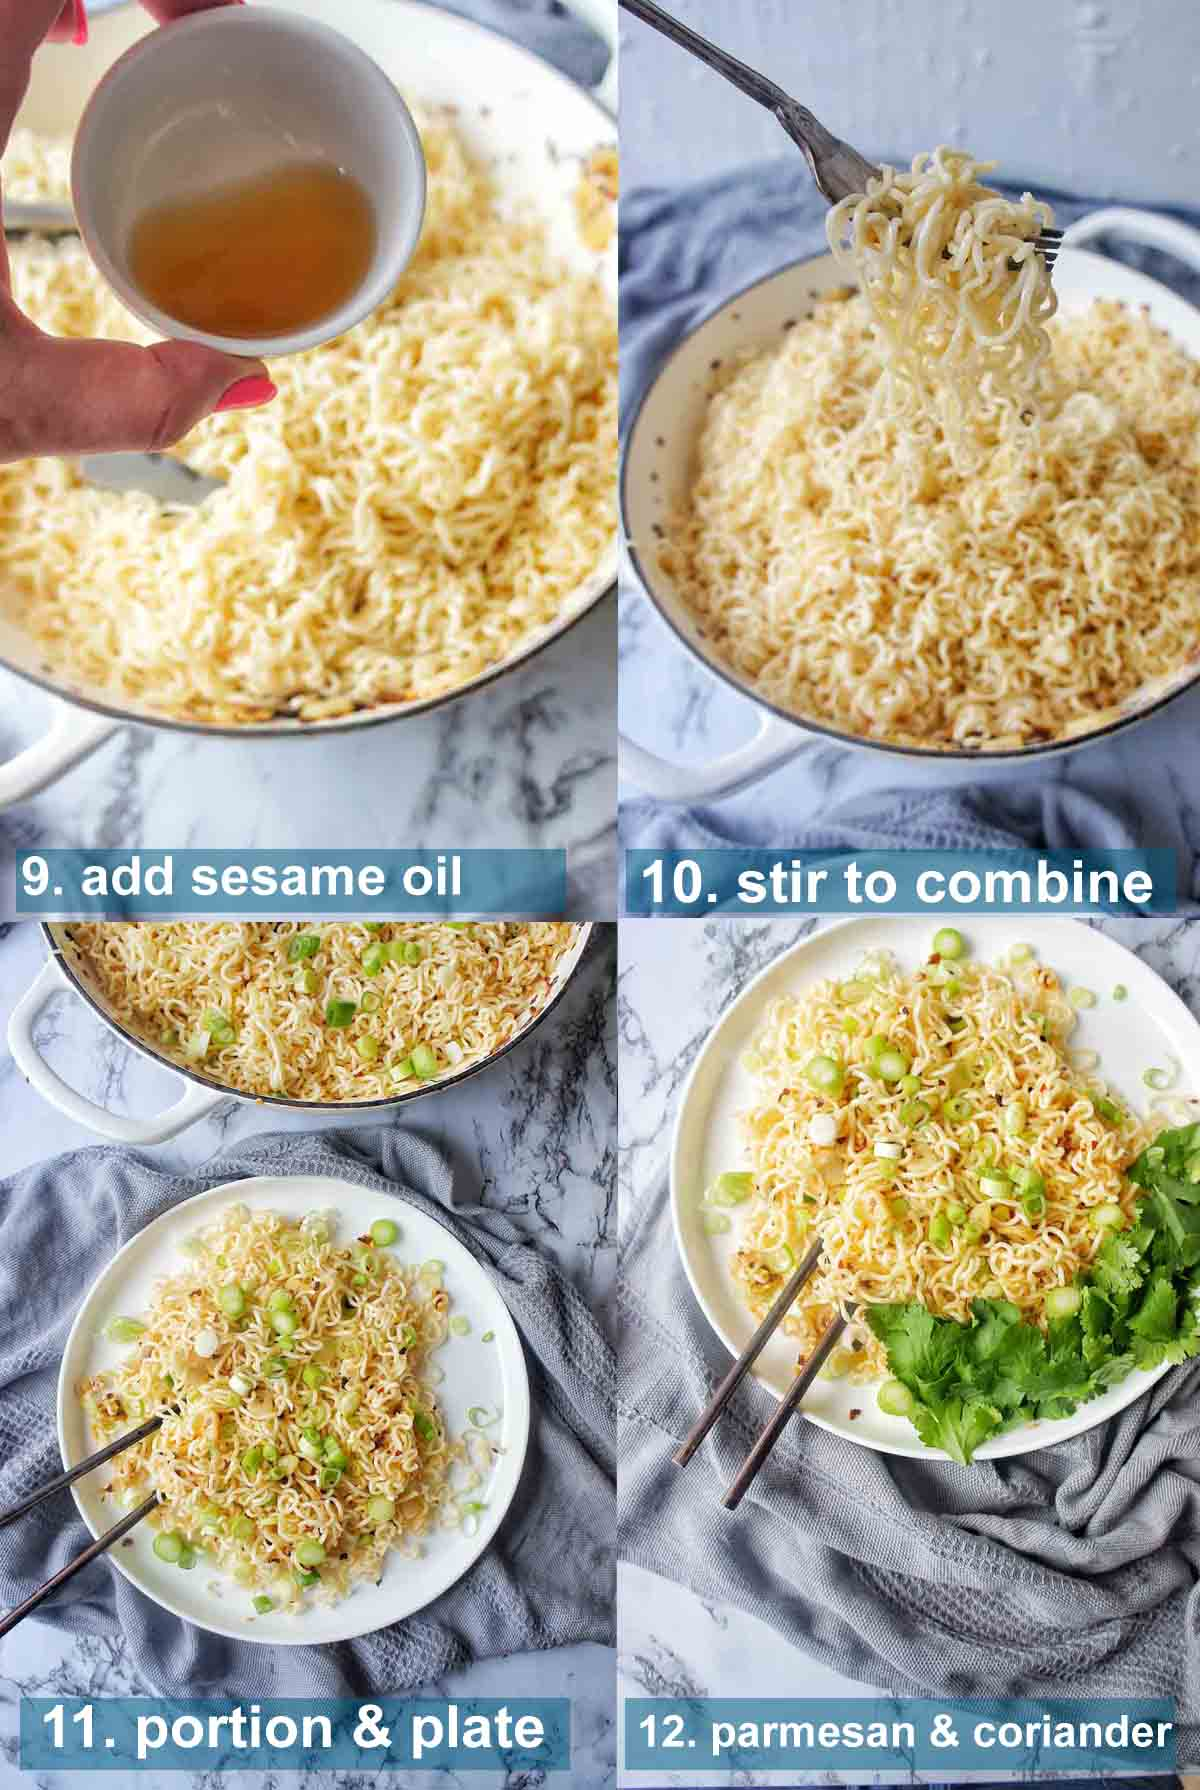 Garlic noodles recipe method 9 to 12 with text over lay